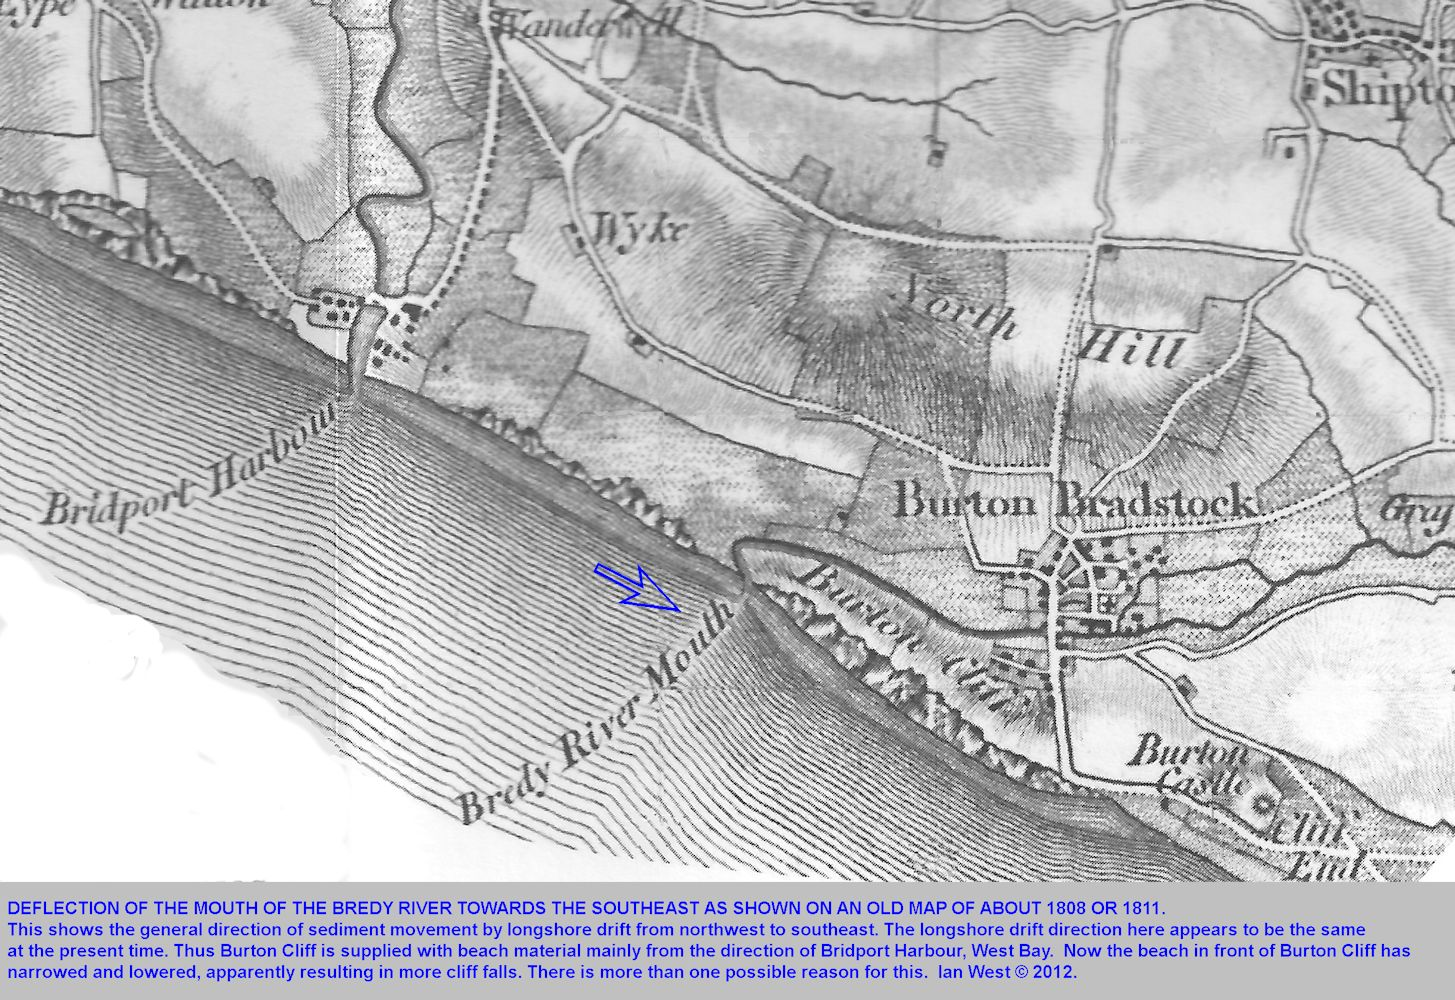 An old map of about 1811 shows that longshore drift towards Burton Cliff was from Bridport Harbour area, Dorset